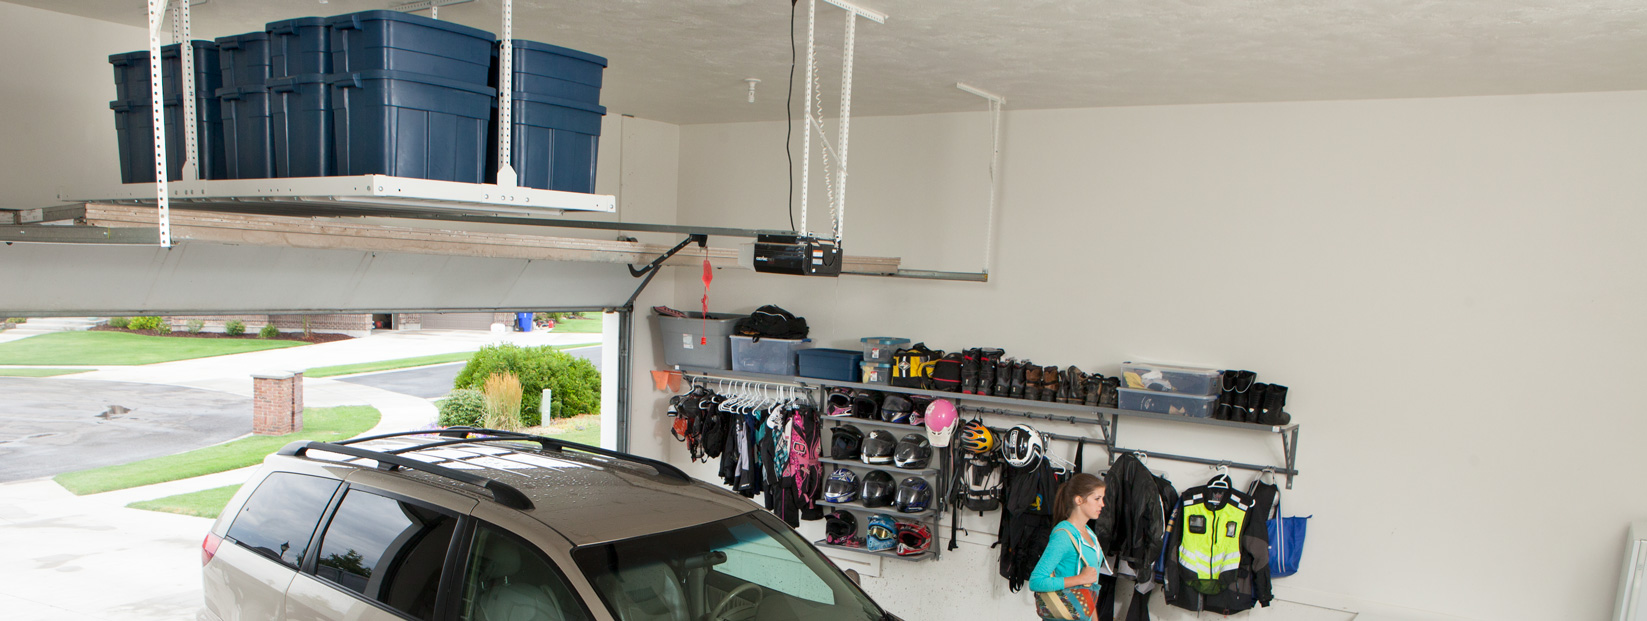 Garage Overhead Storage Rapid City